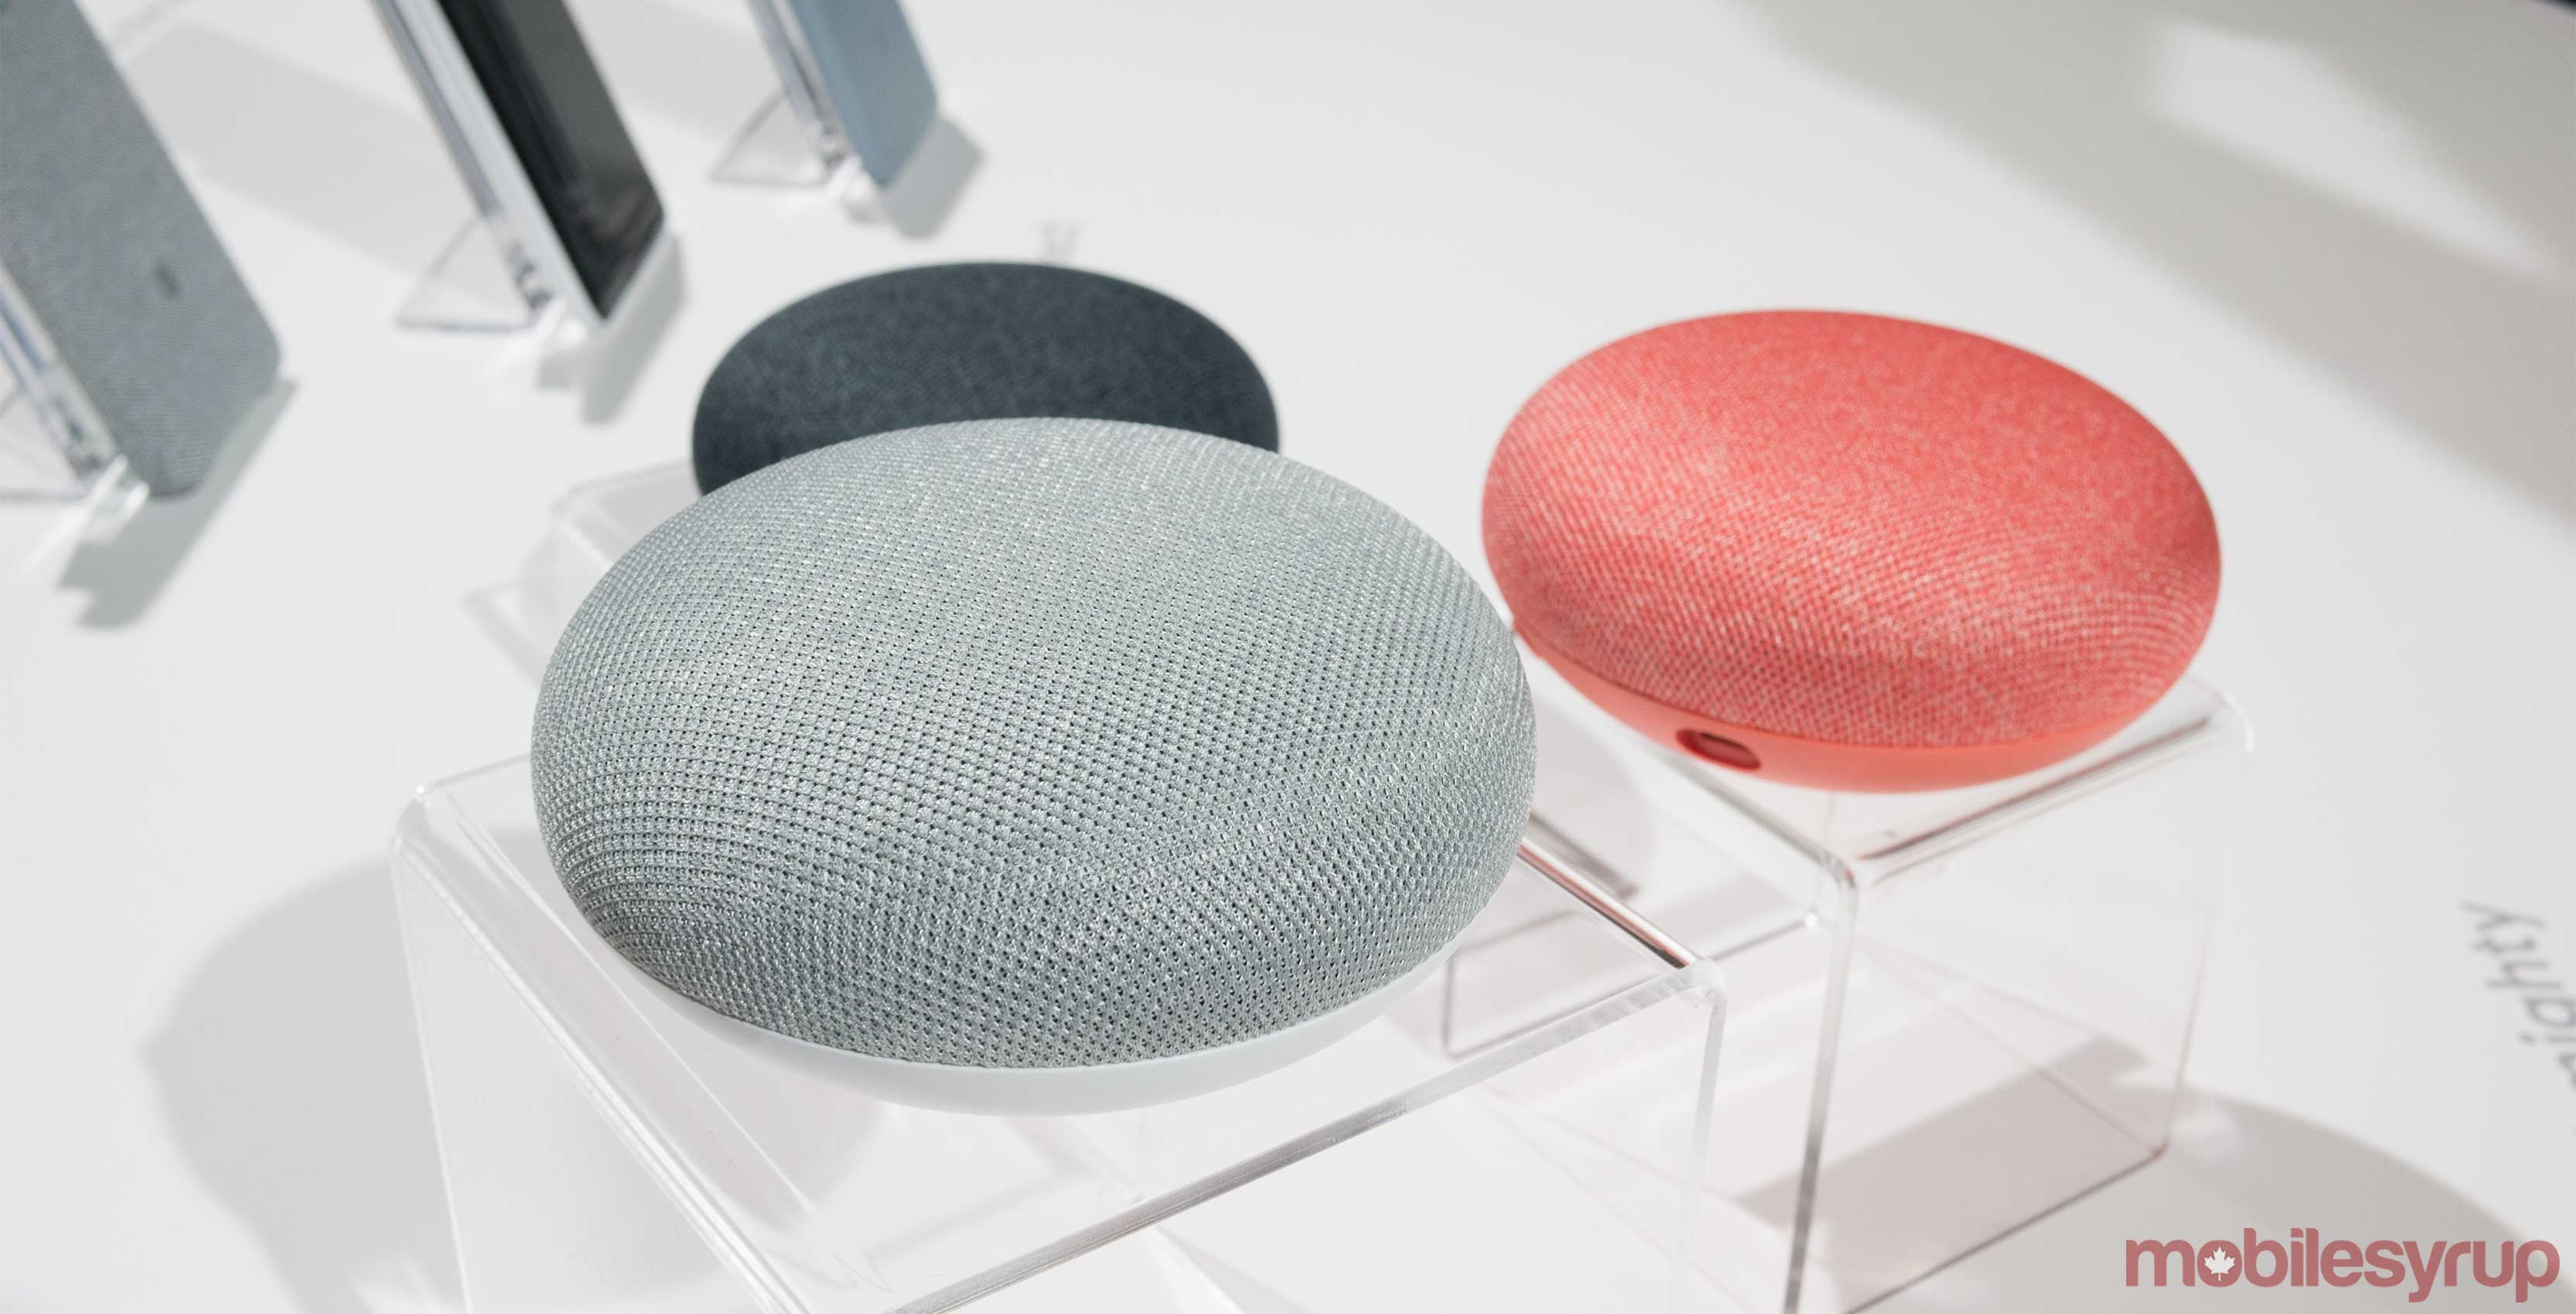 Some Google Home Mini units recording everything they hear [Update]